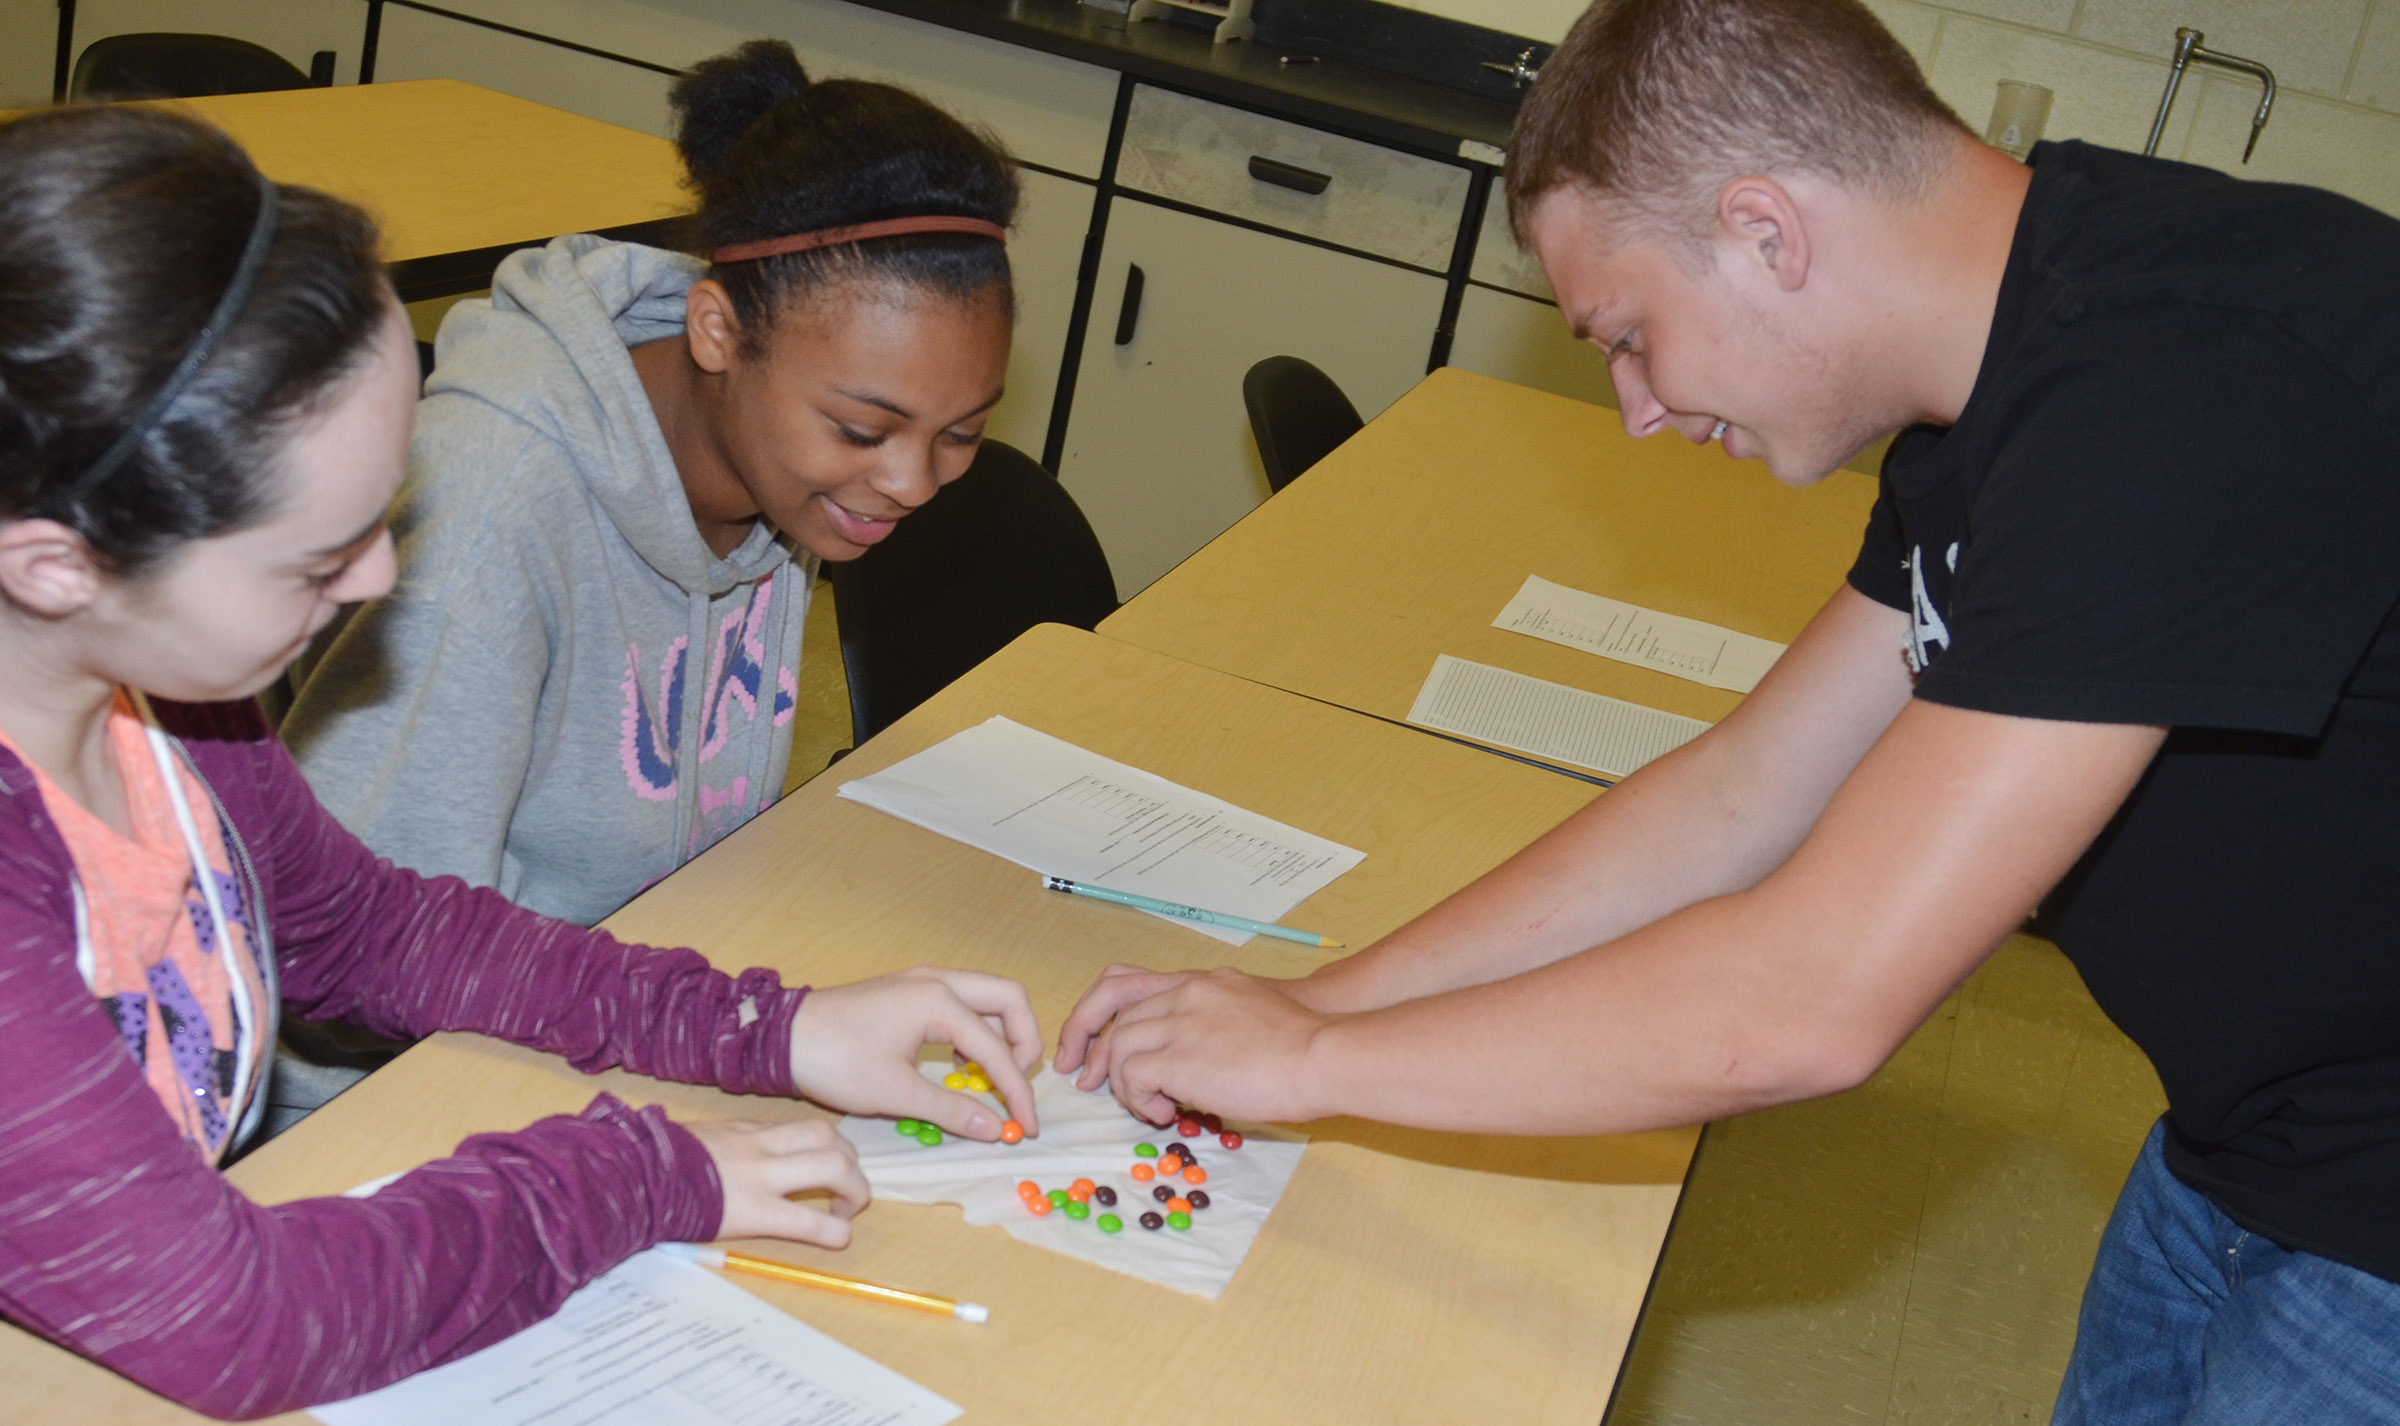 From left, CHS sophomores Jewell Cox, Alexis Lane and Devon Reardon count and sort their Skittles candies.